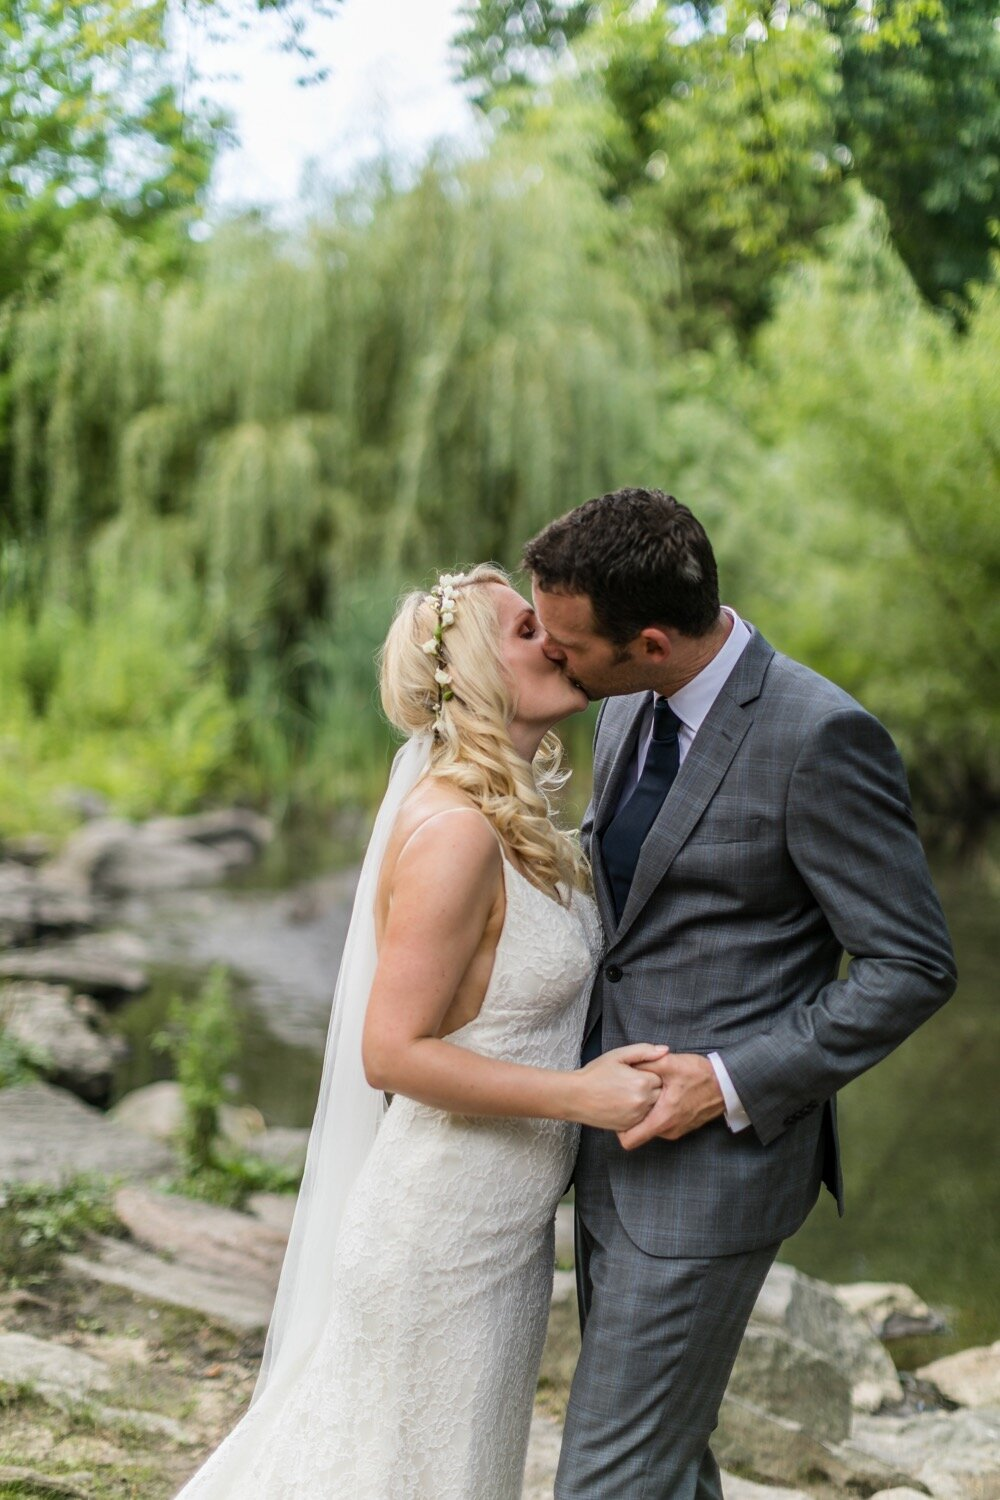 Bride and groom kissing at their Central Park elopement.